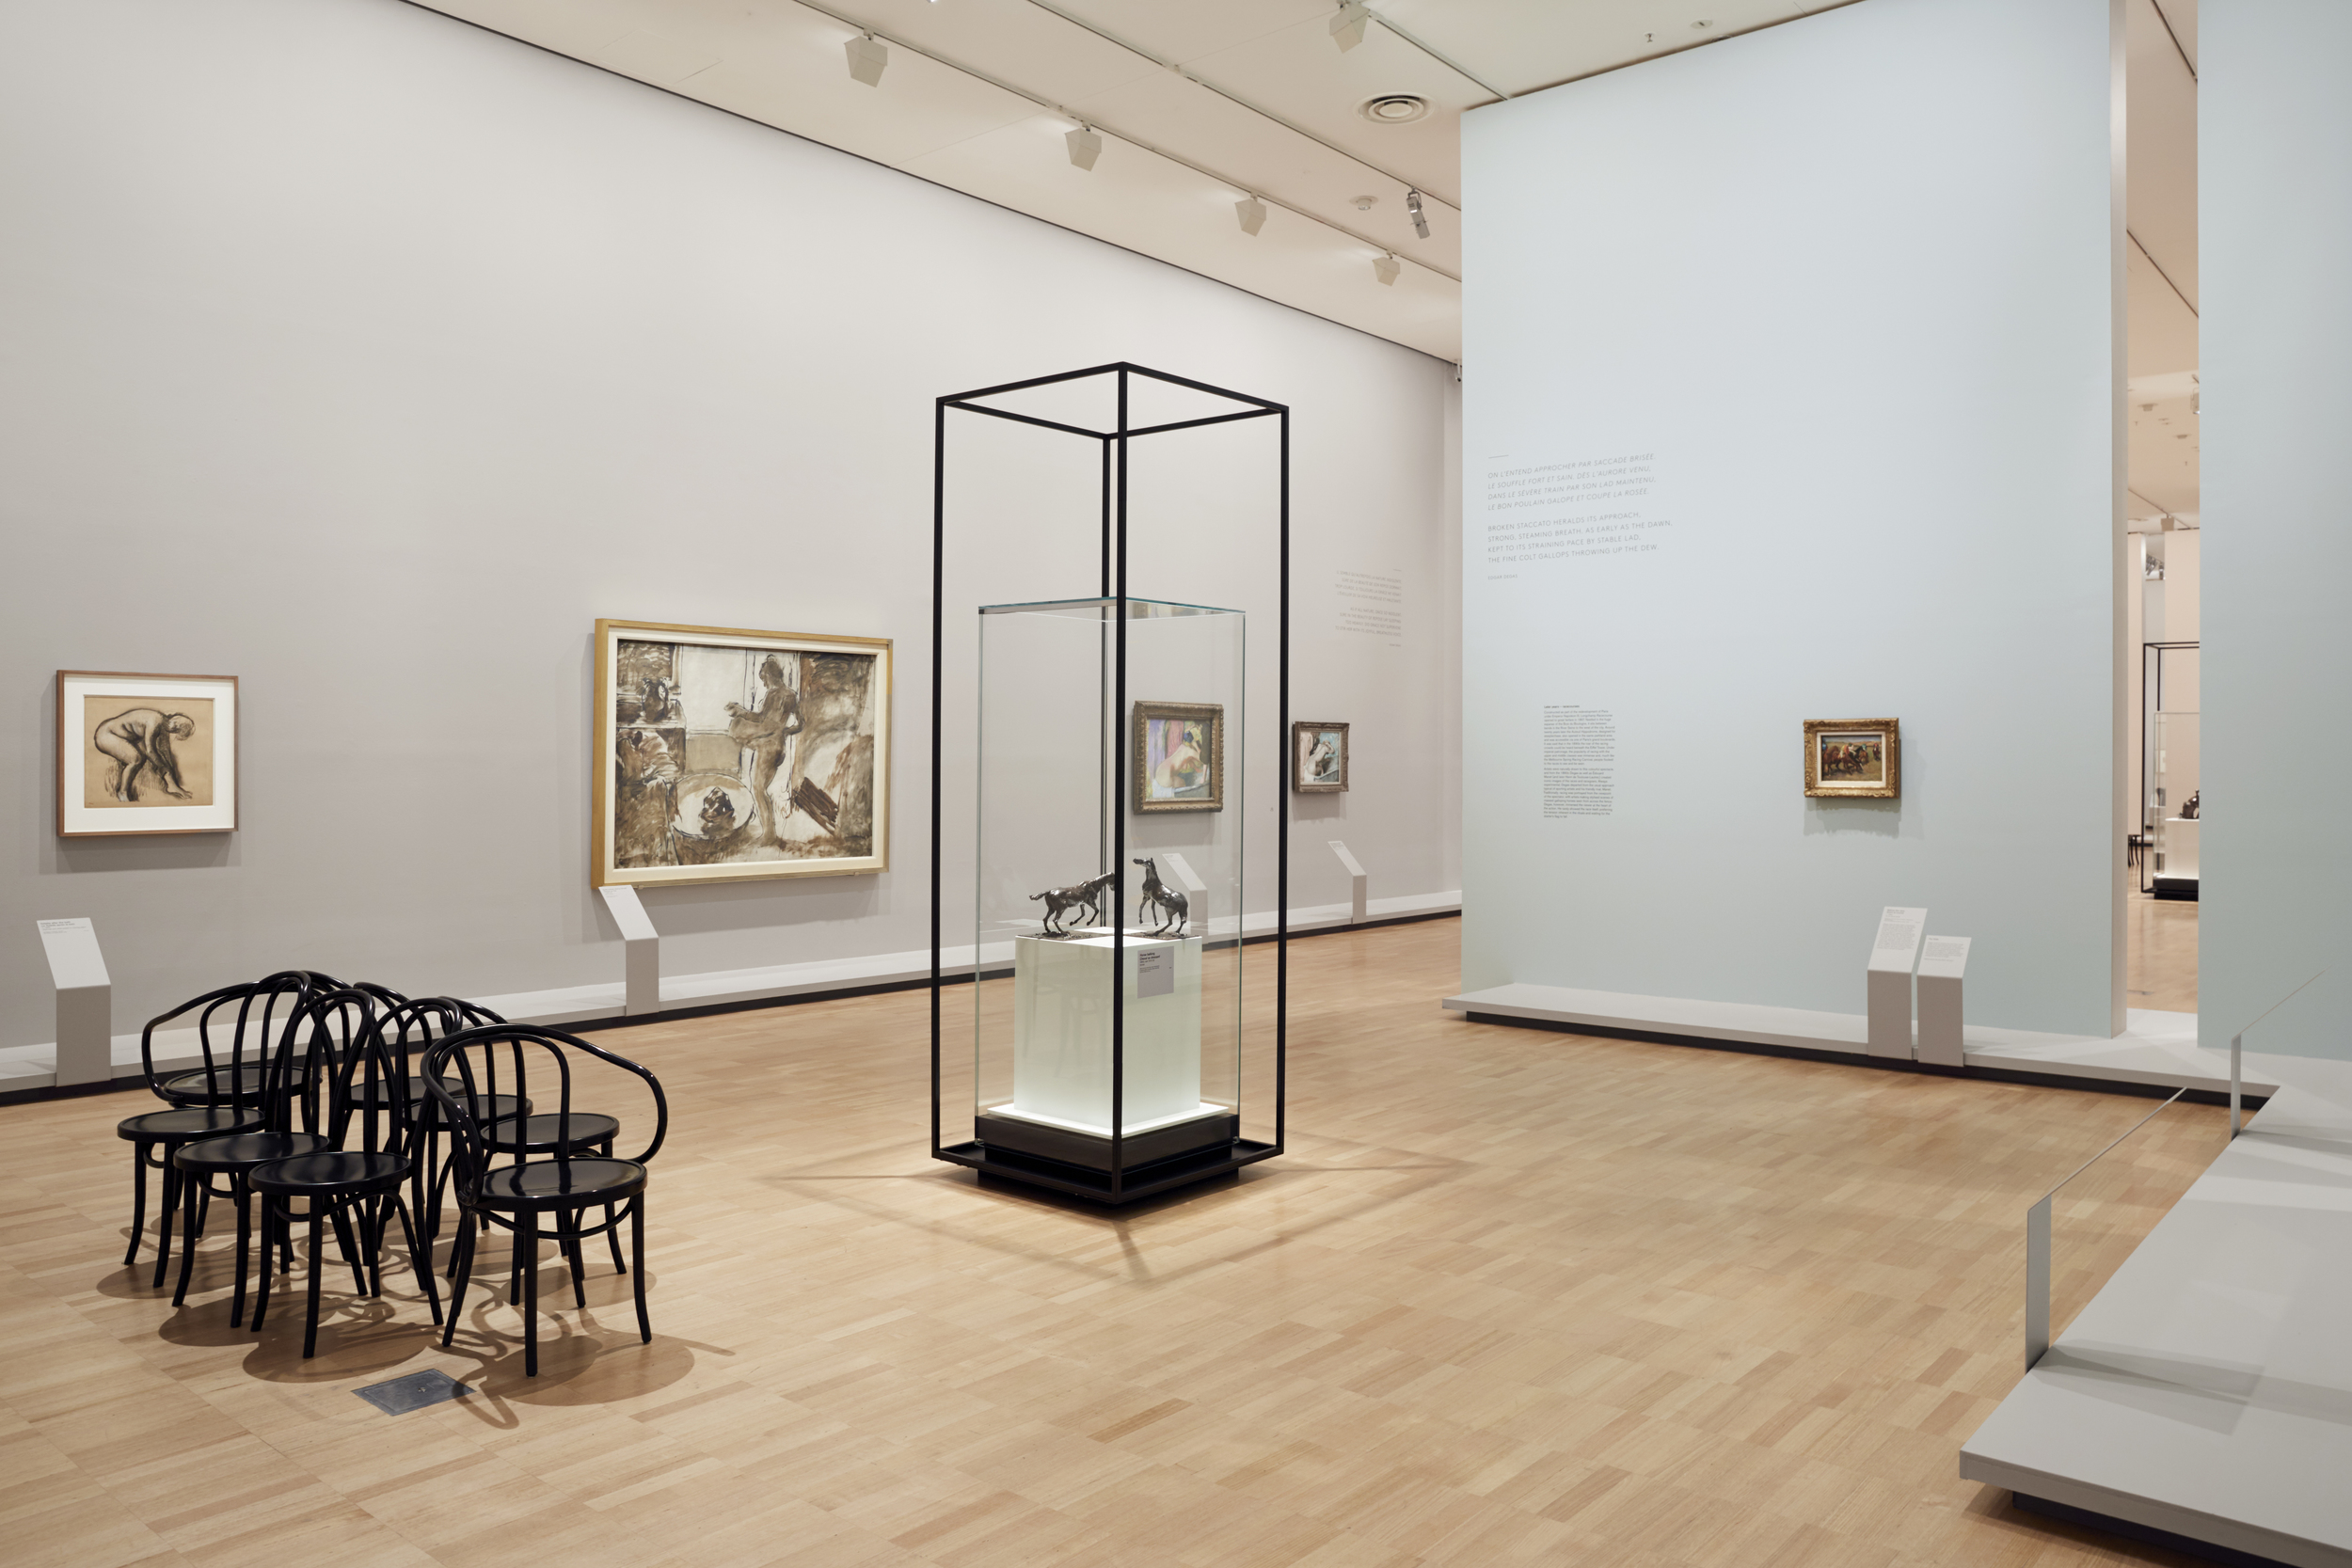 Installation view of Degas: A New Vision at NGV International, 24 June – 18 September 2016. Photo: Tom Ross